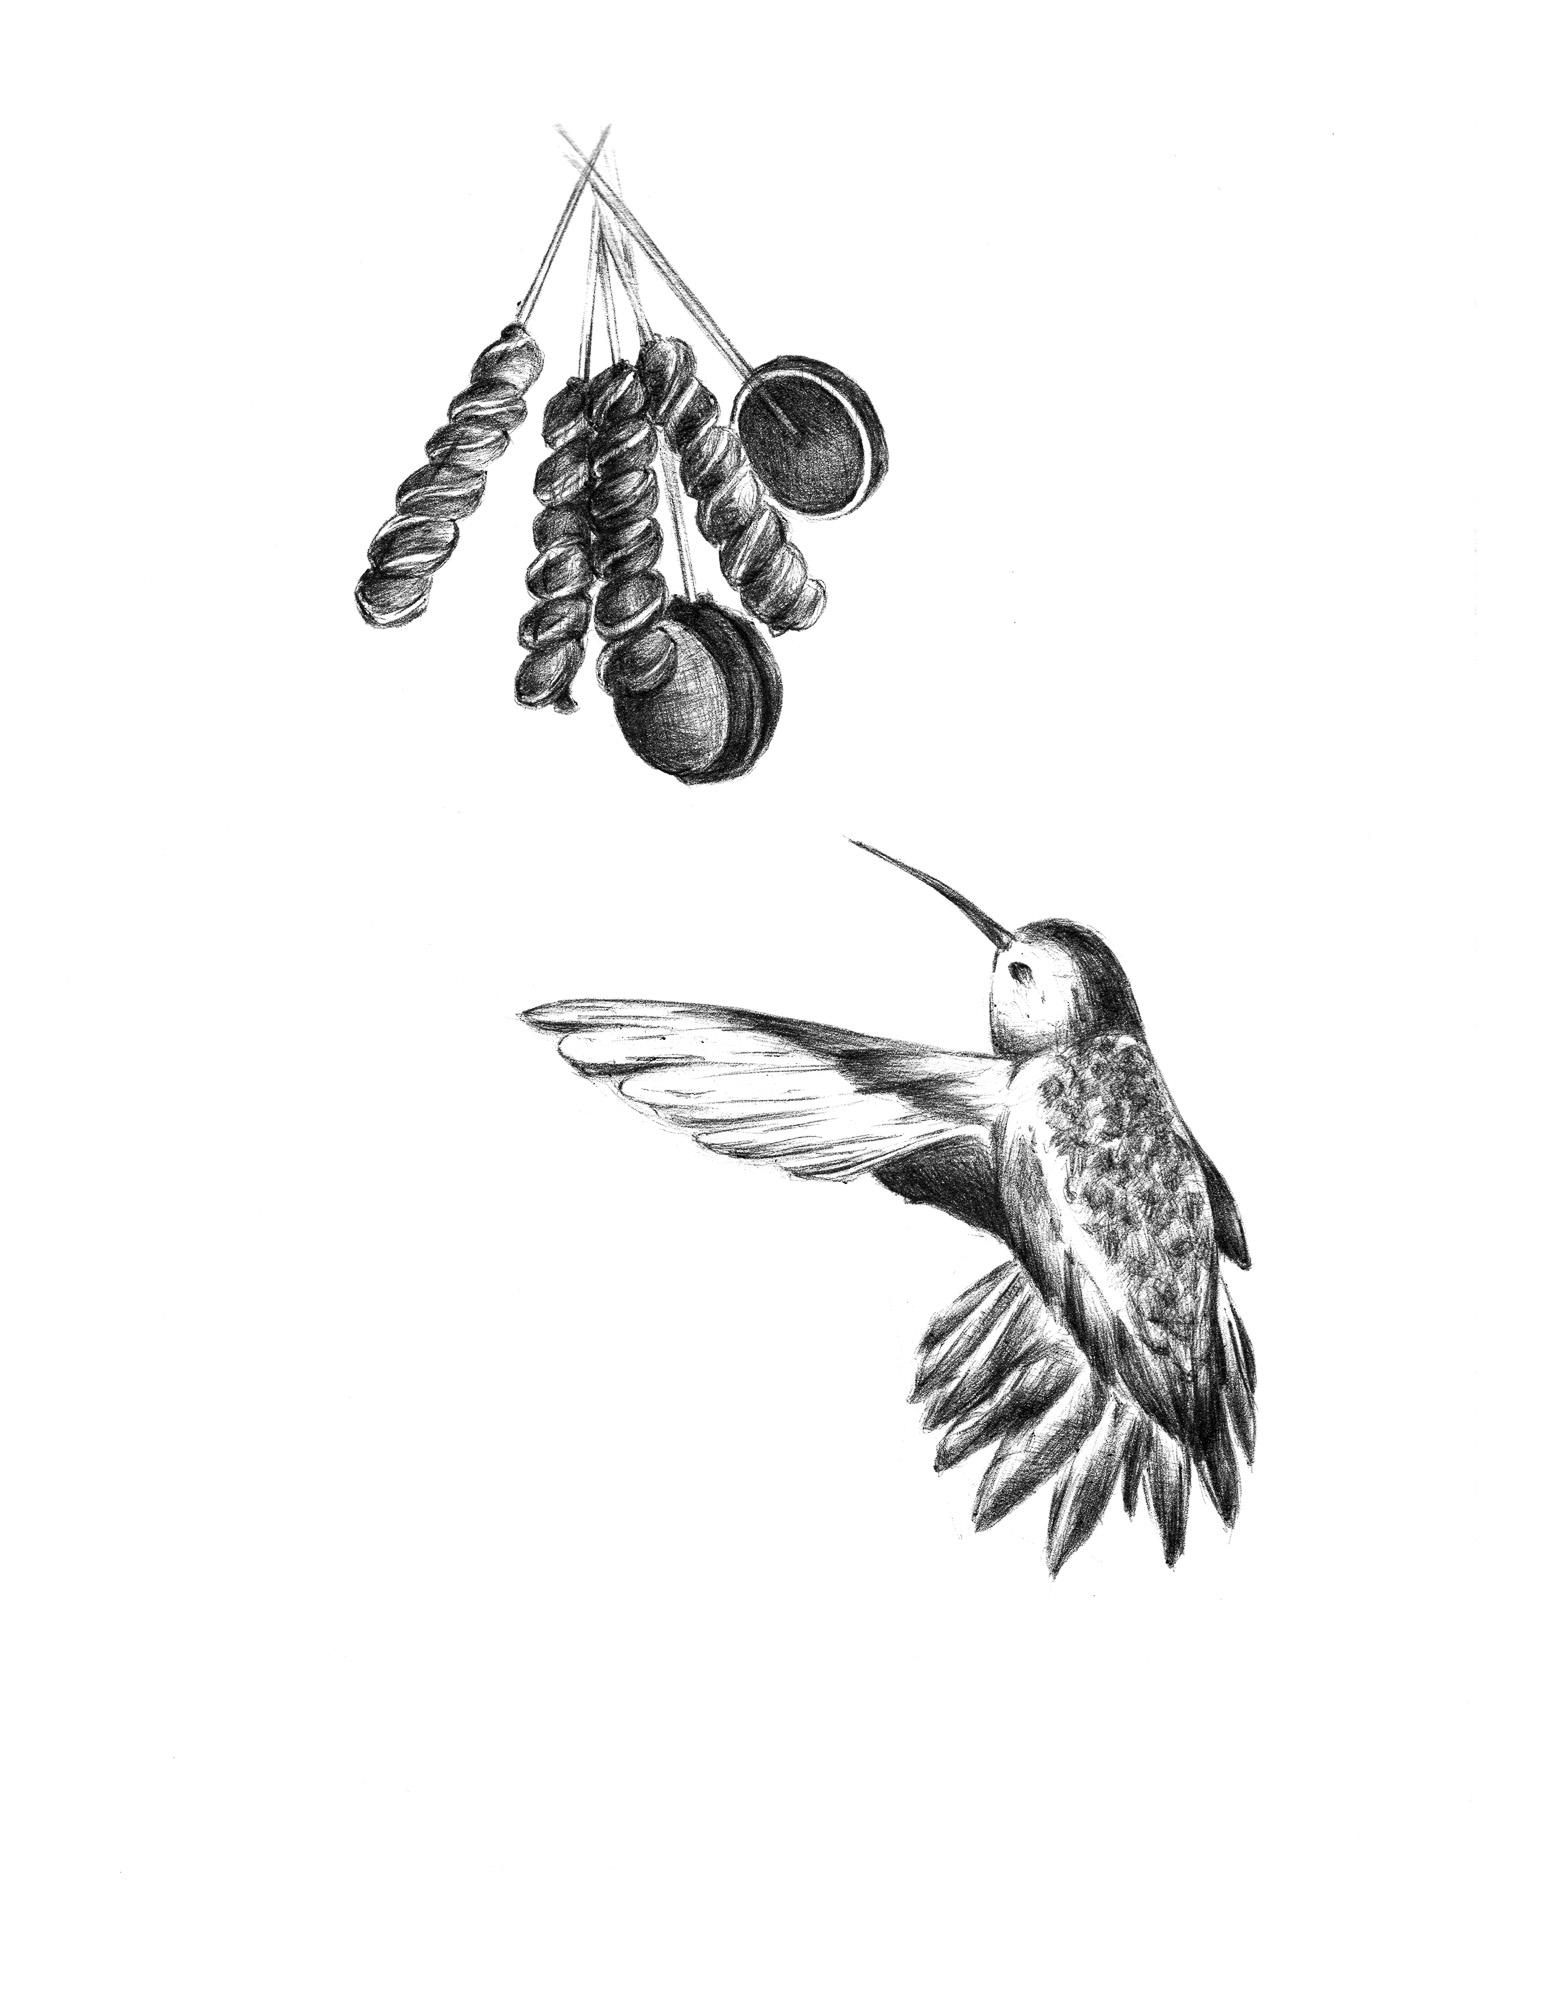 hummingbirddrawing.jpg